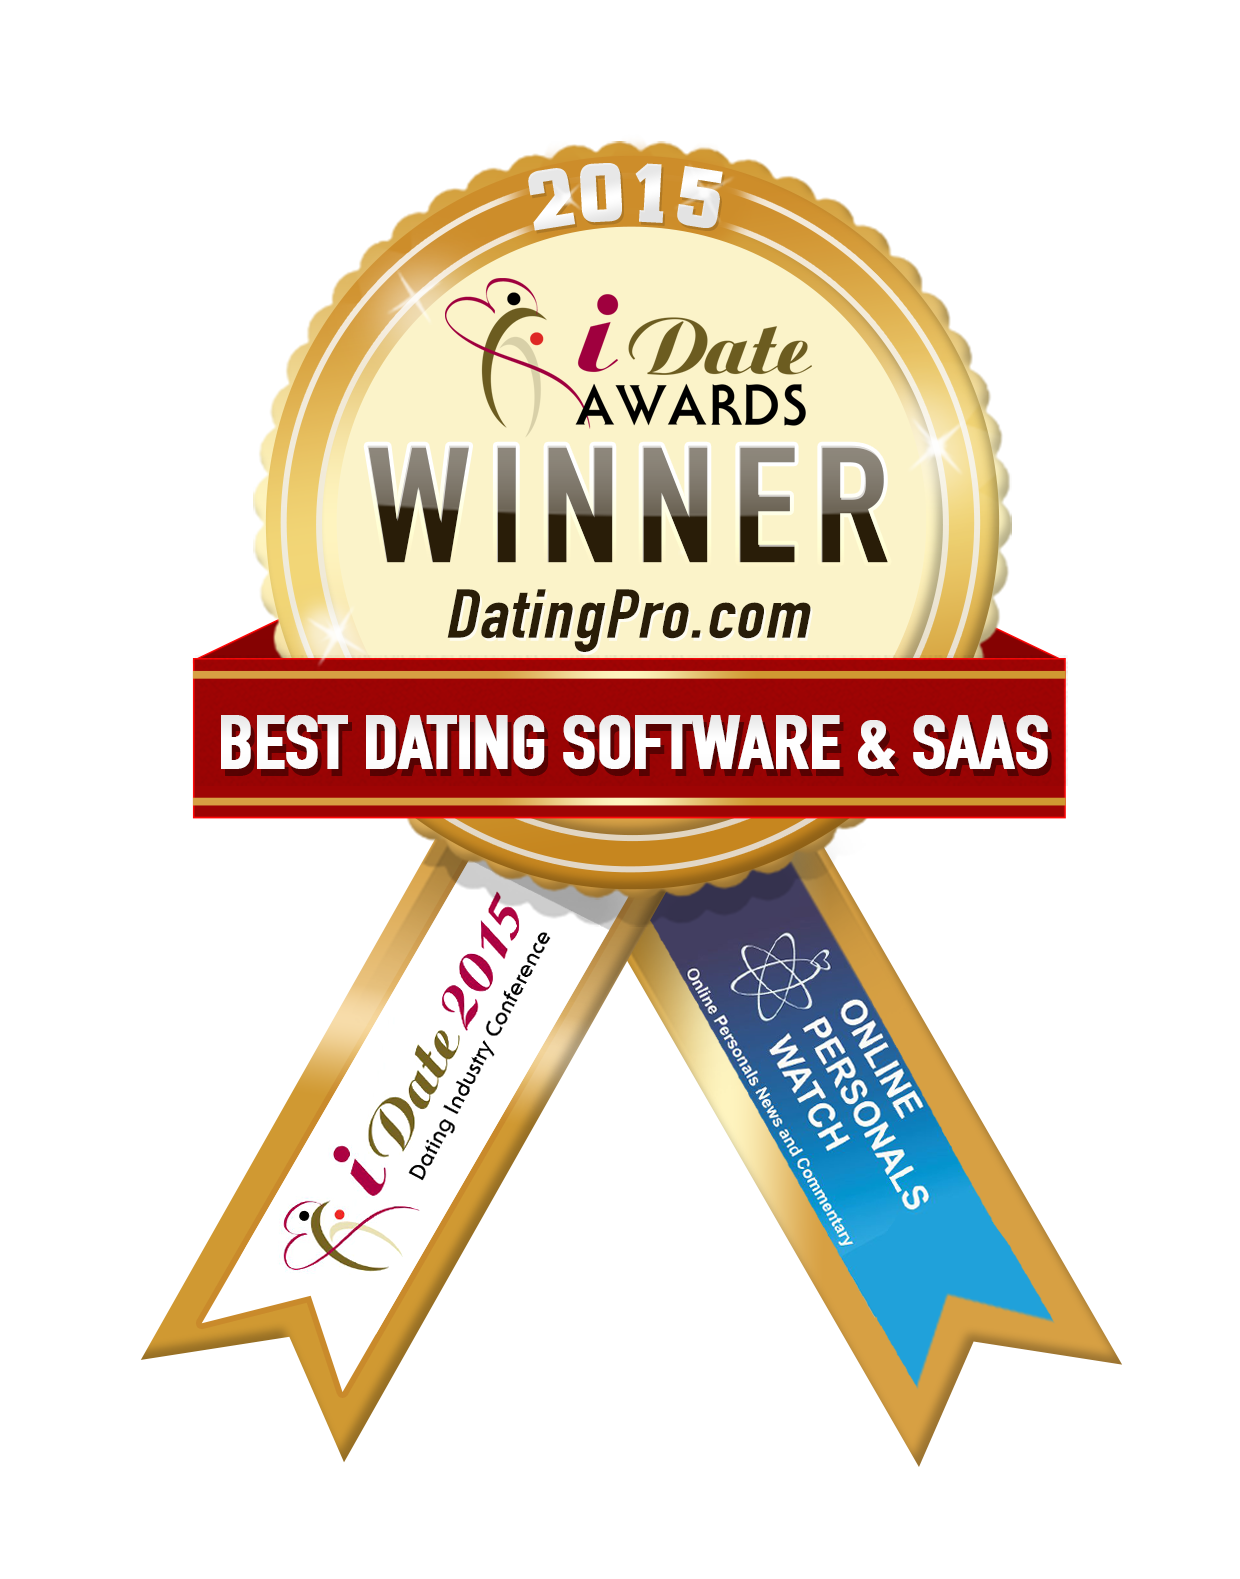 PG Dating Pro Award Winning Dating Software